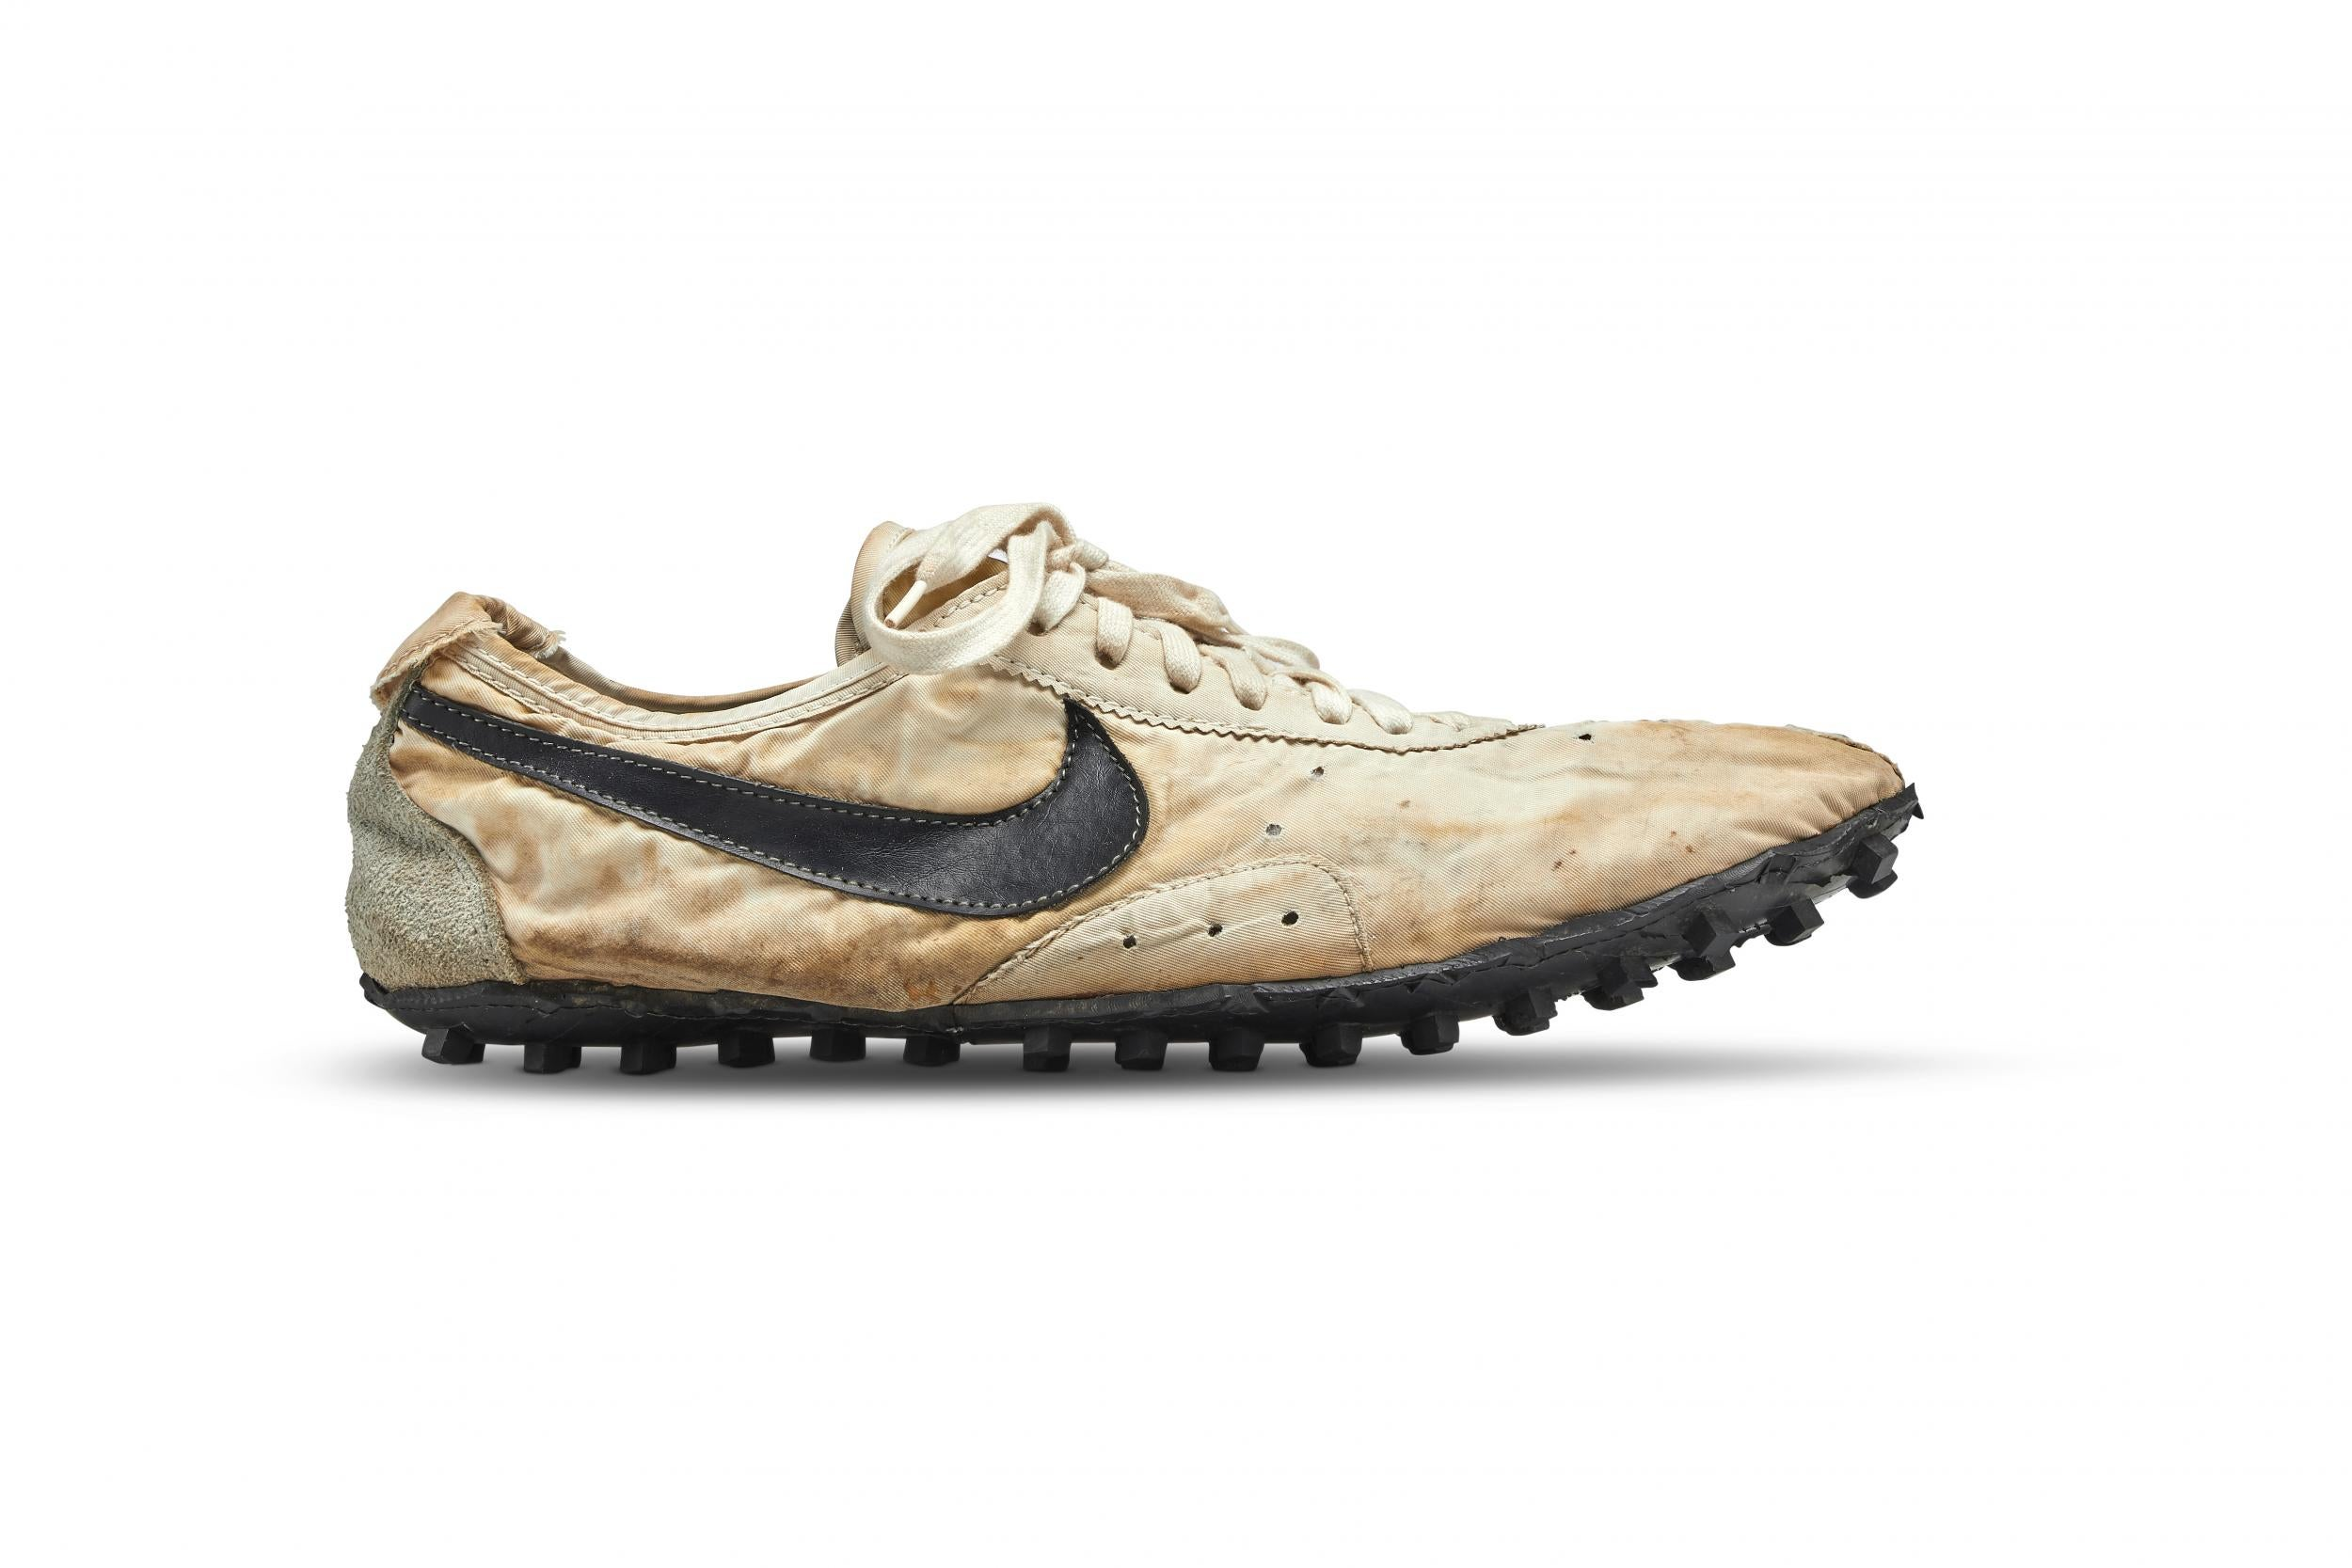 Nike Moon Shoe trainers break world auction record by